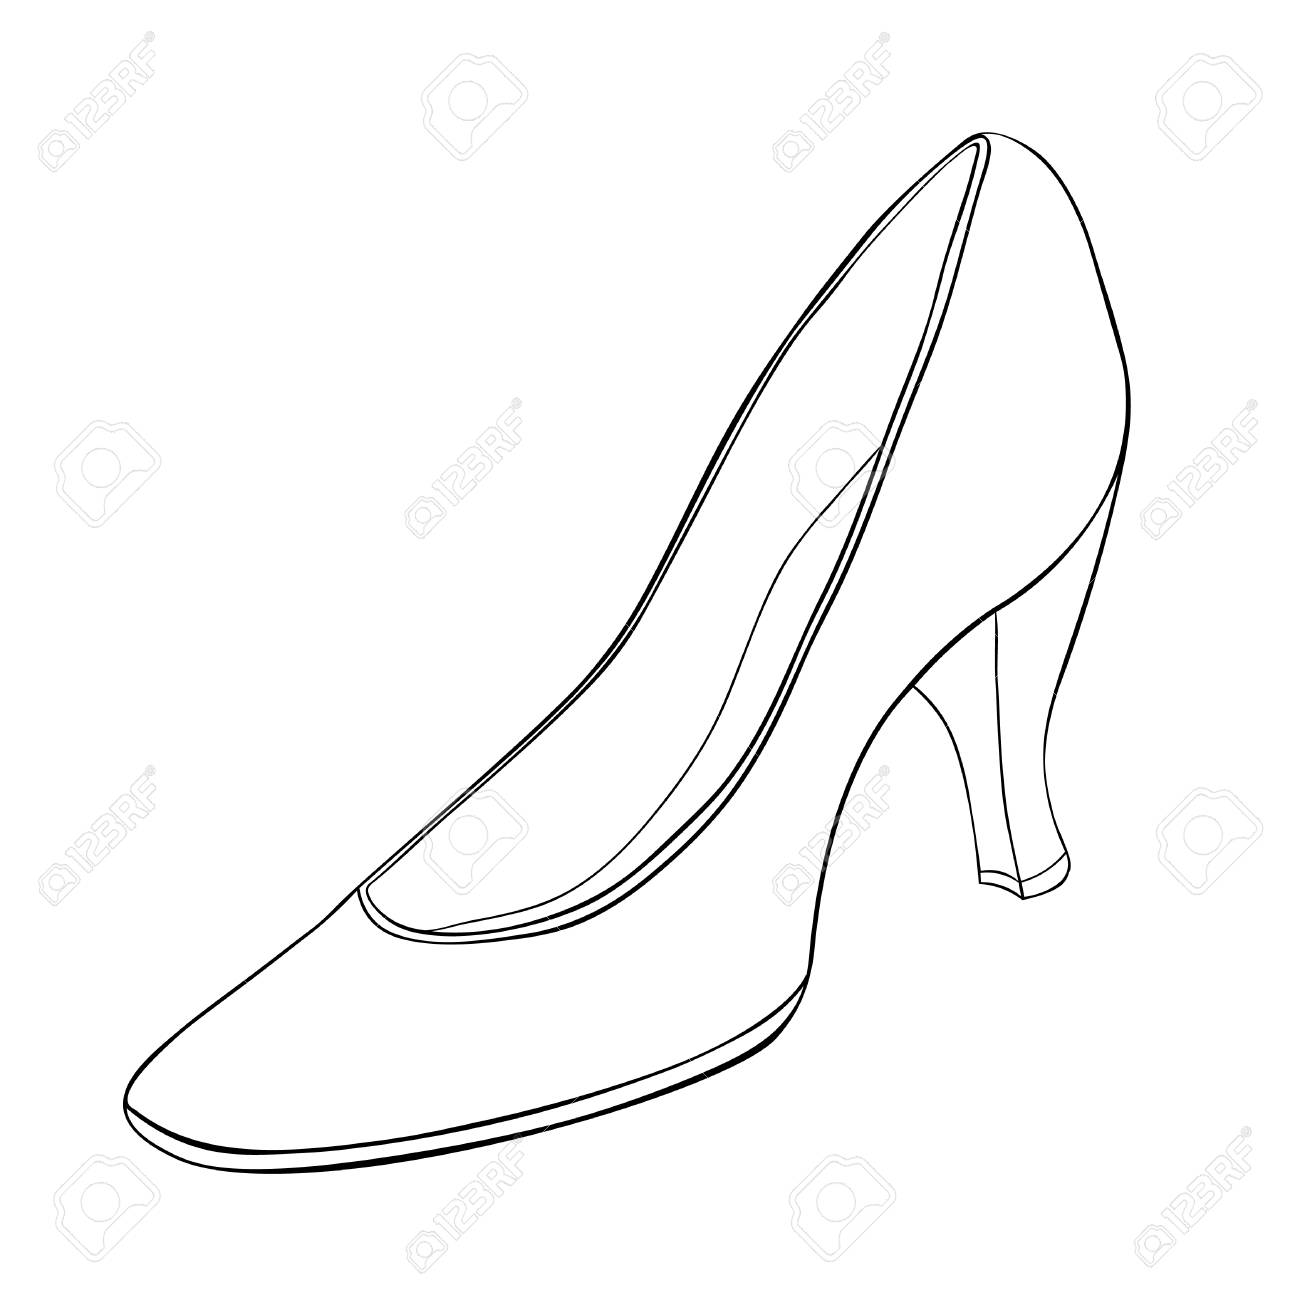 coloring shoes for girls, women on heels vector illustration